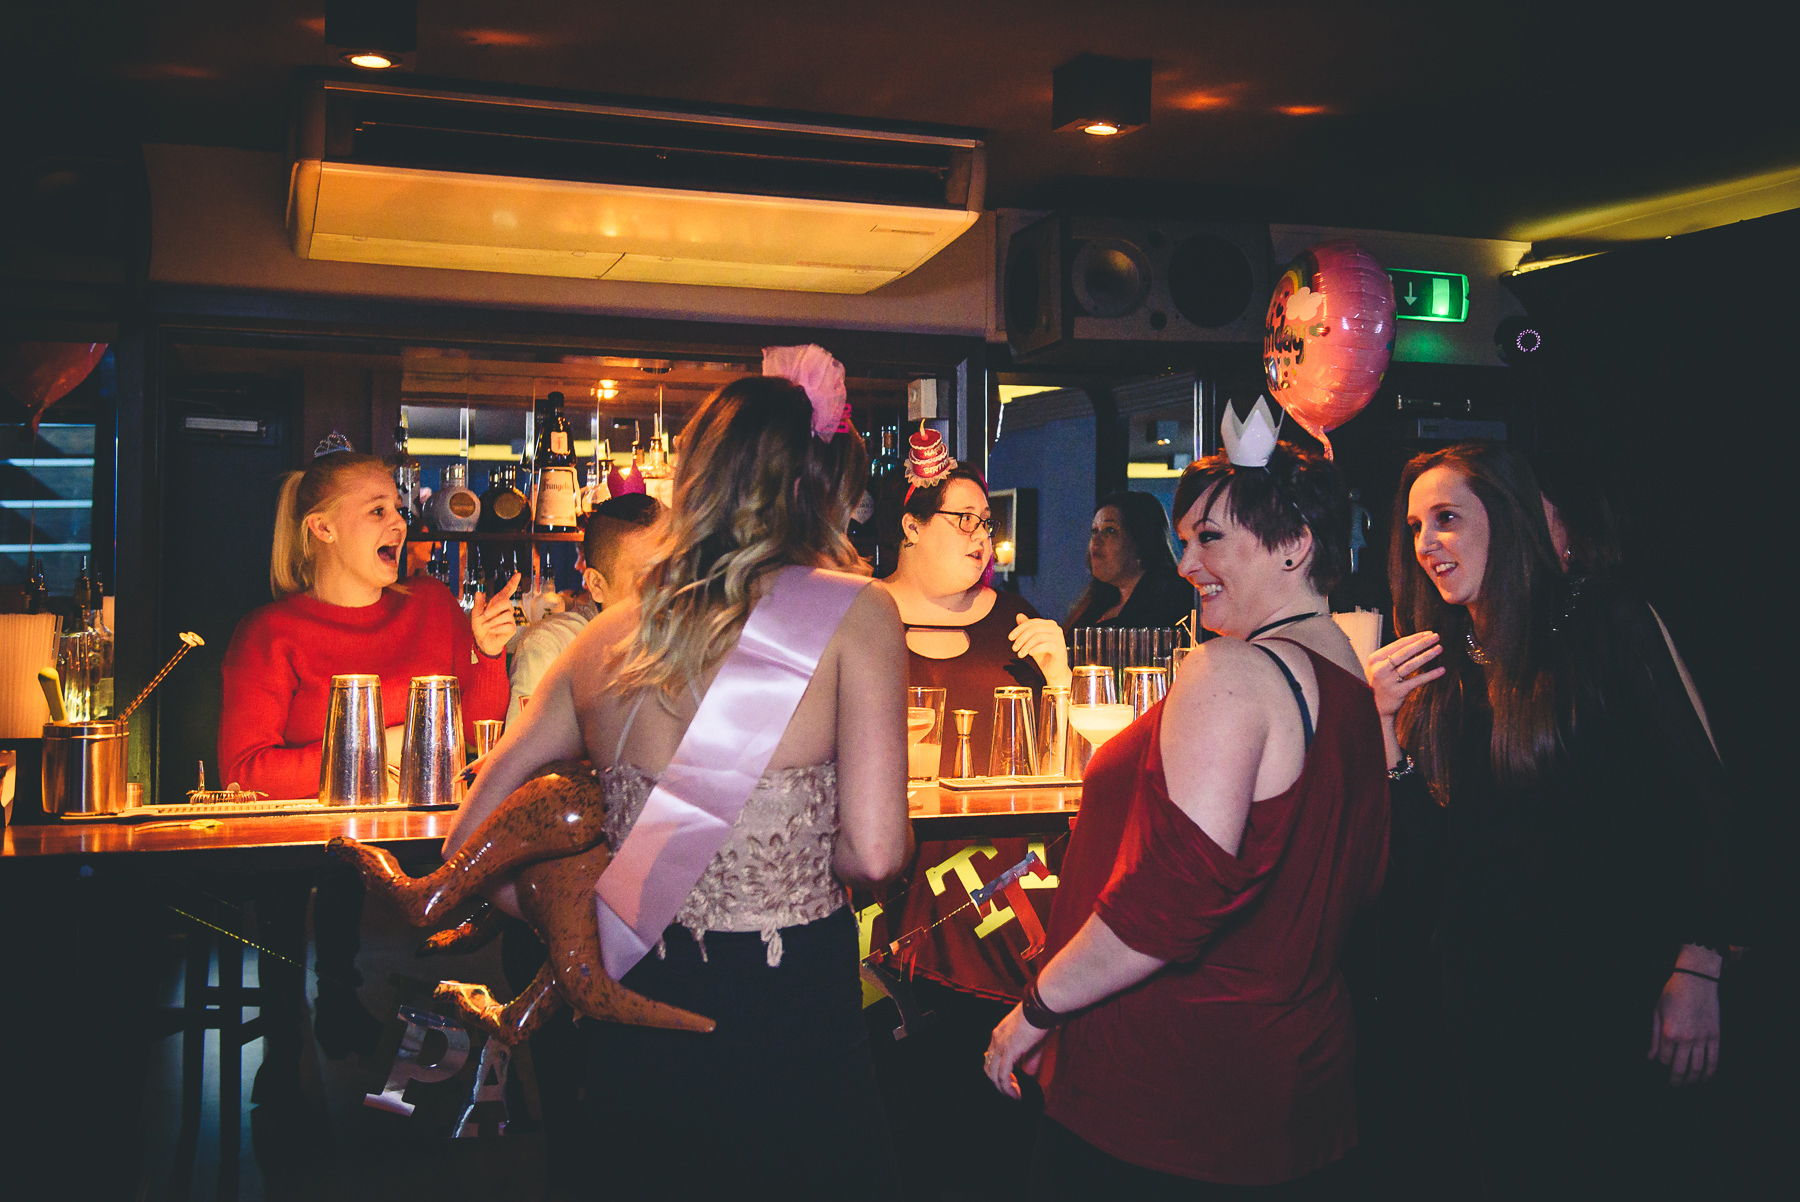 Angels cocktail bar Oxford 09.02.2019-036.jpg